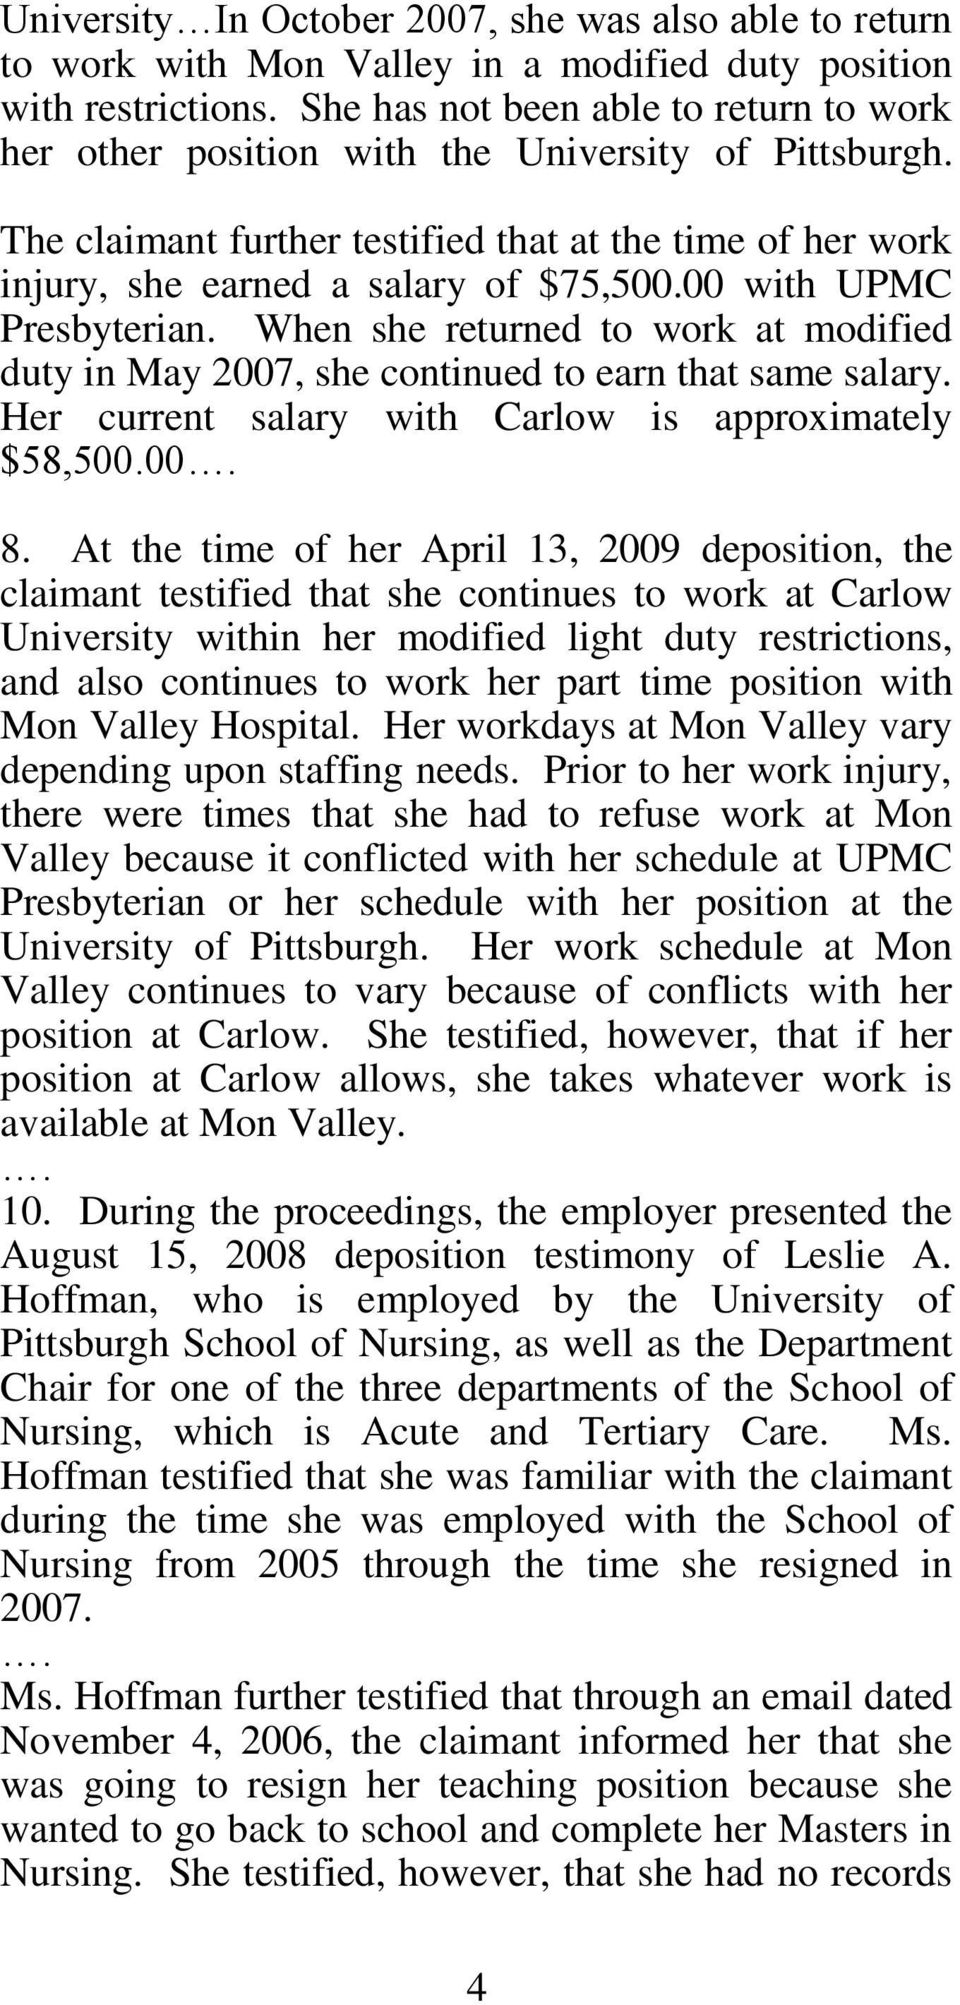 00 with UPMC Presbyterian. When she returned to work at modified duty in May 2007, she continued to earn that same salary. Her current salary with Carlow is approximately $58,500.00 8.